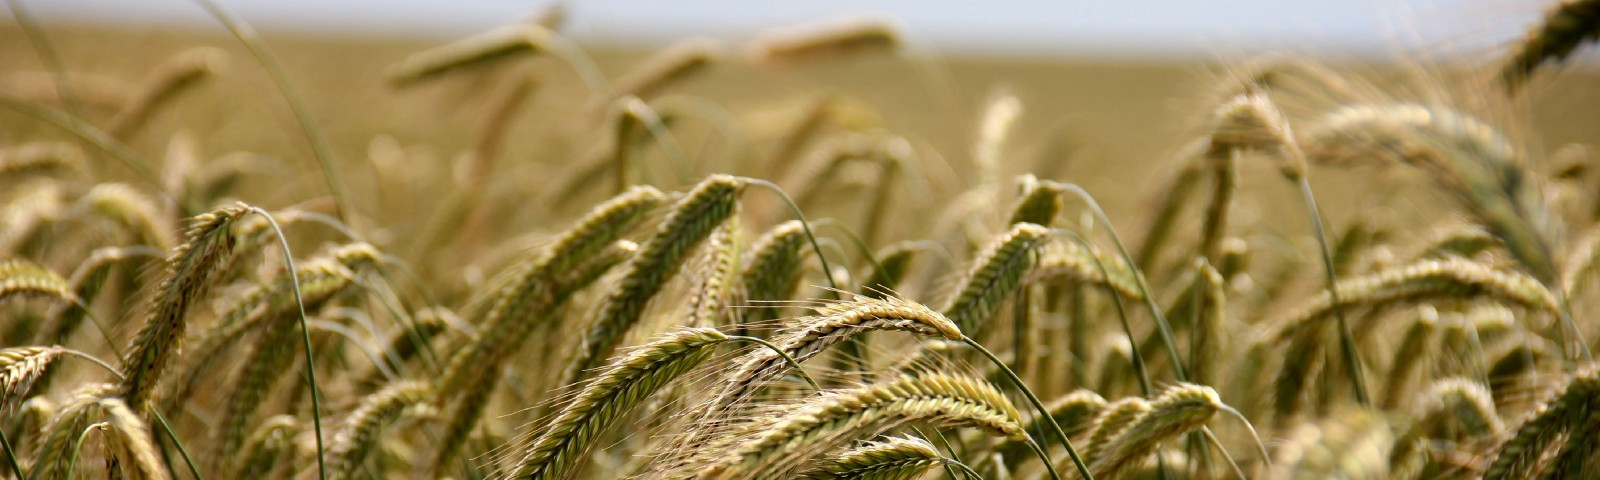 how to make agriculture more sustainable